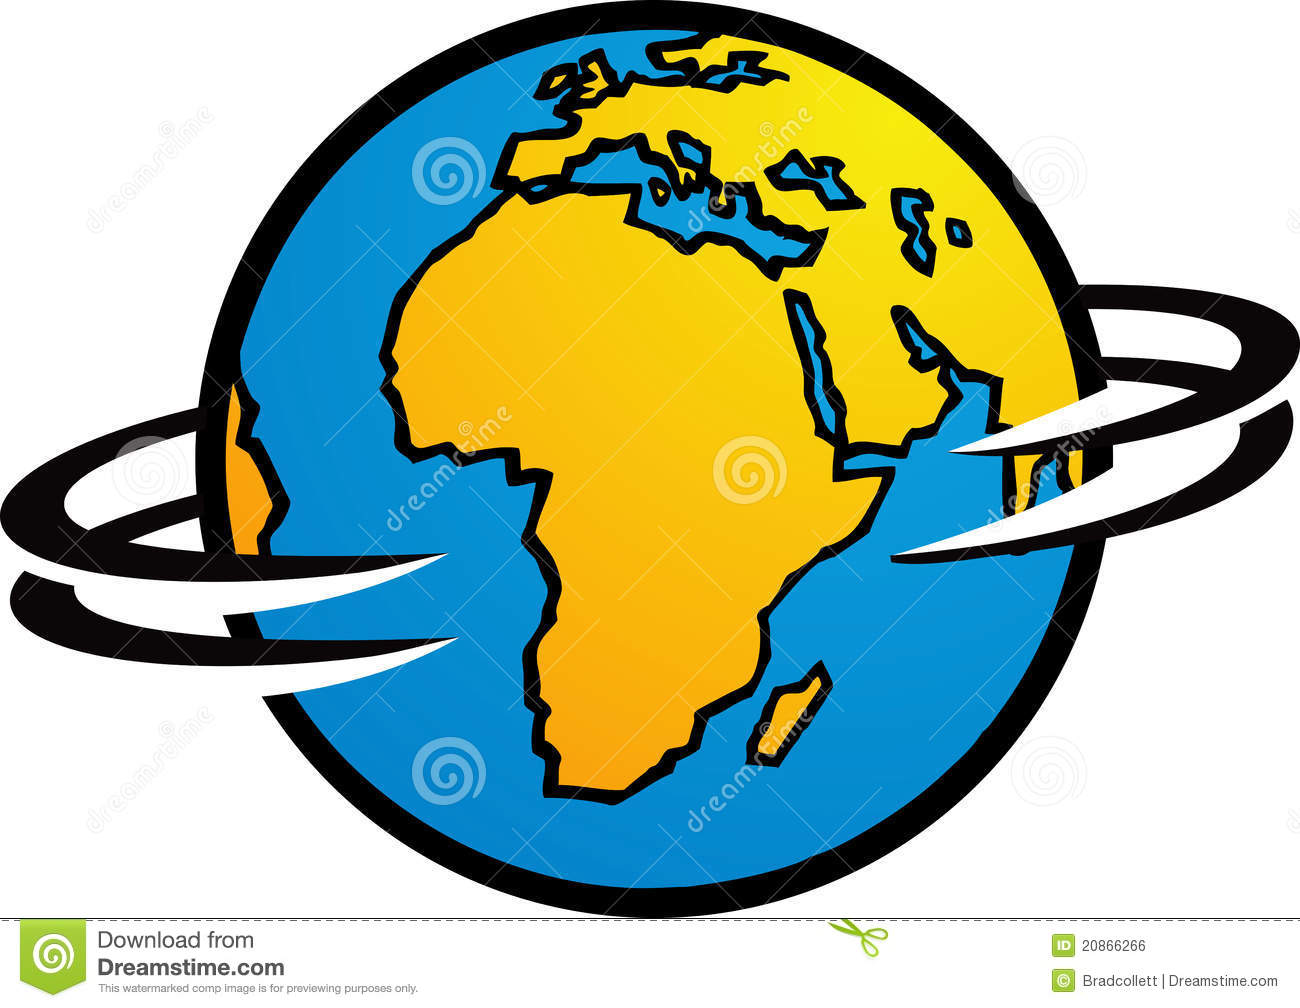 The earth is spinning around  showing Africa Spinning Globe Clip Art